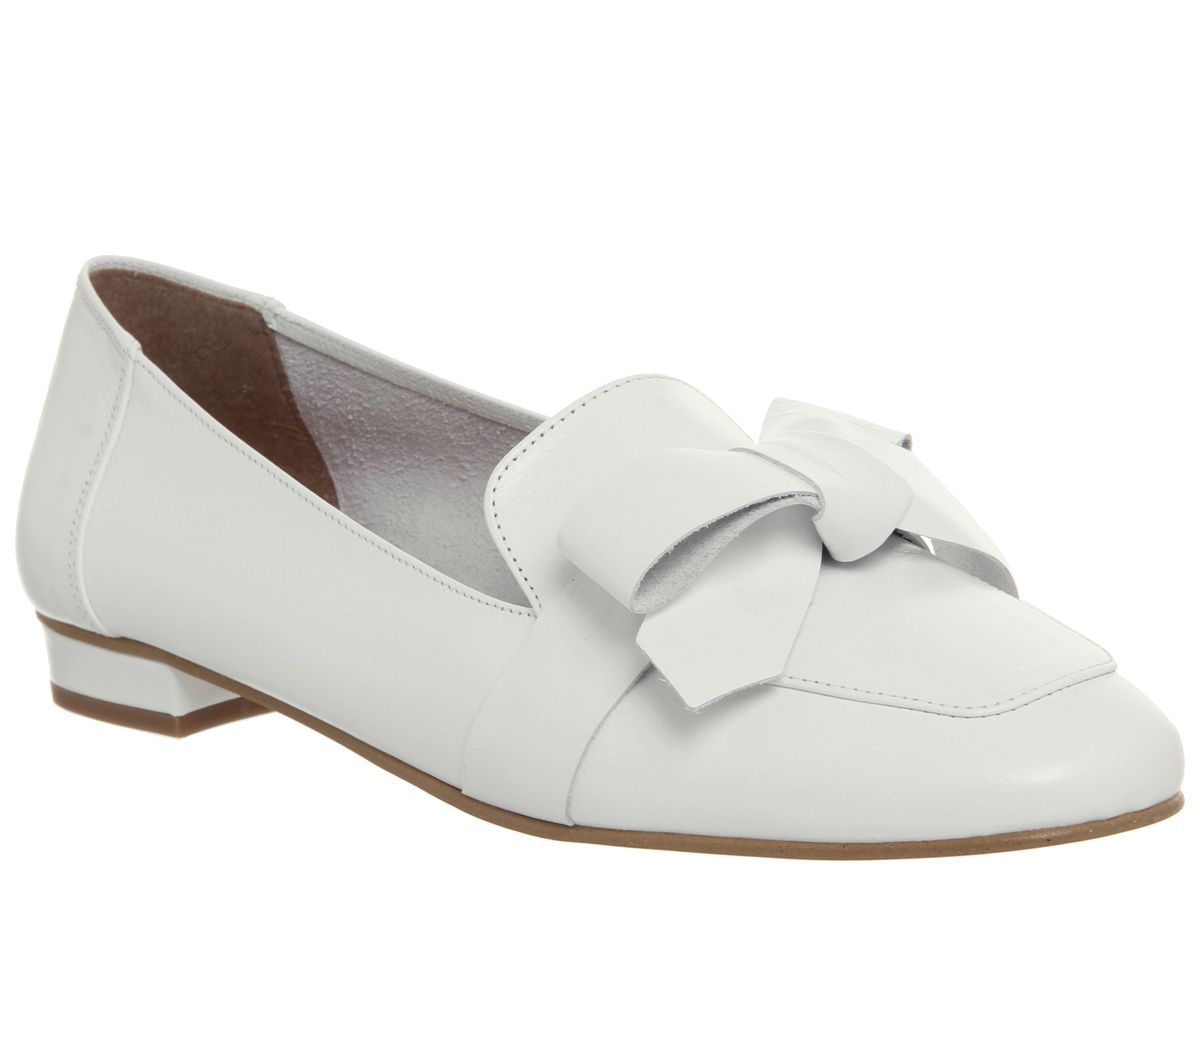 Office Friend Square Toe Bow Loafers, White